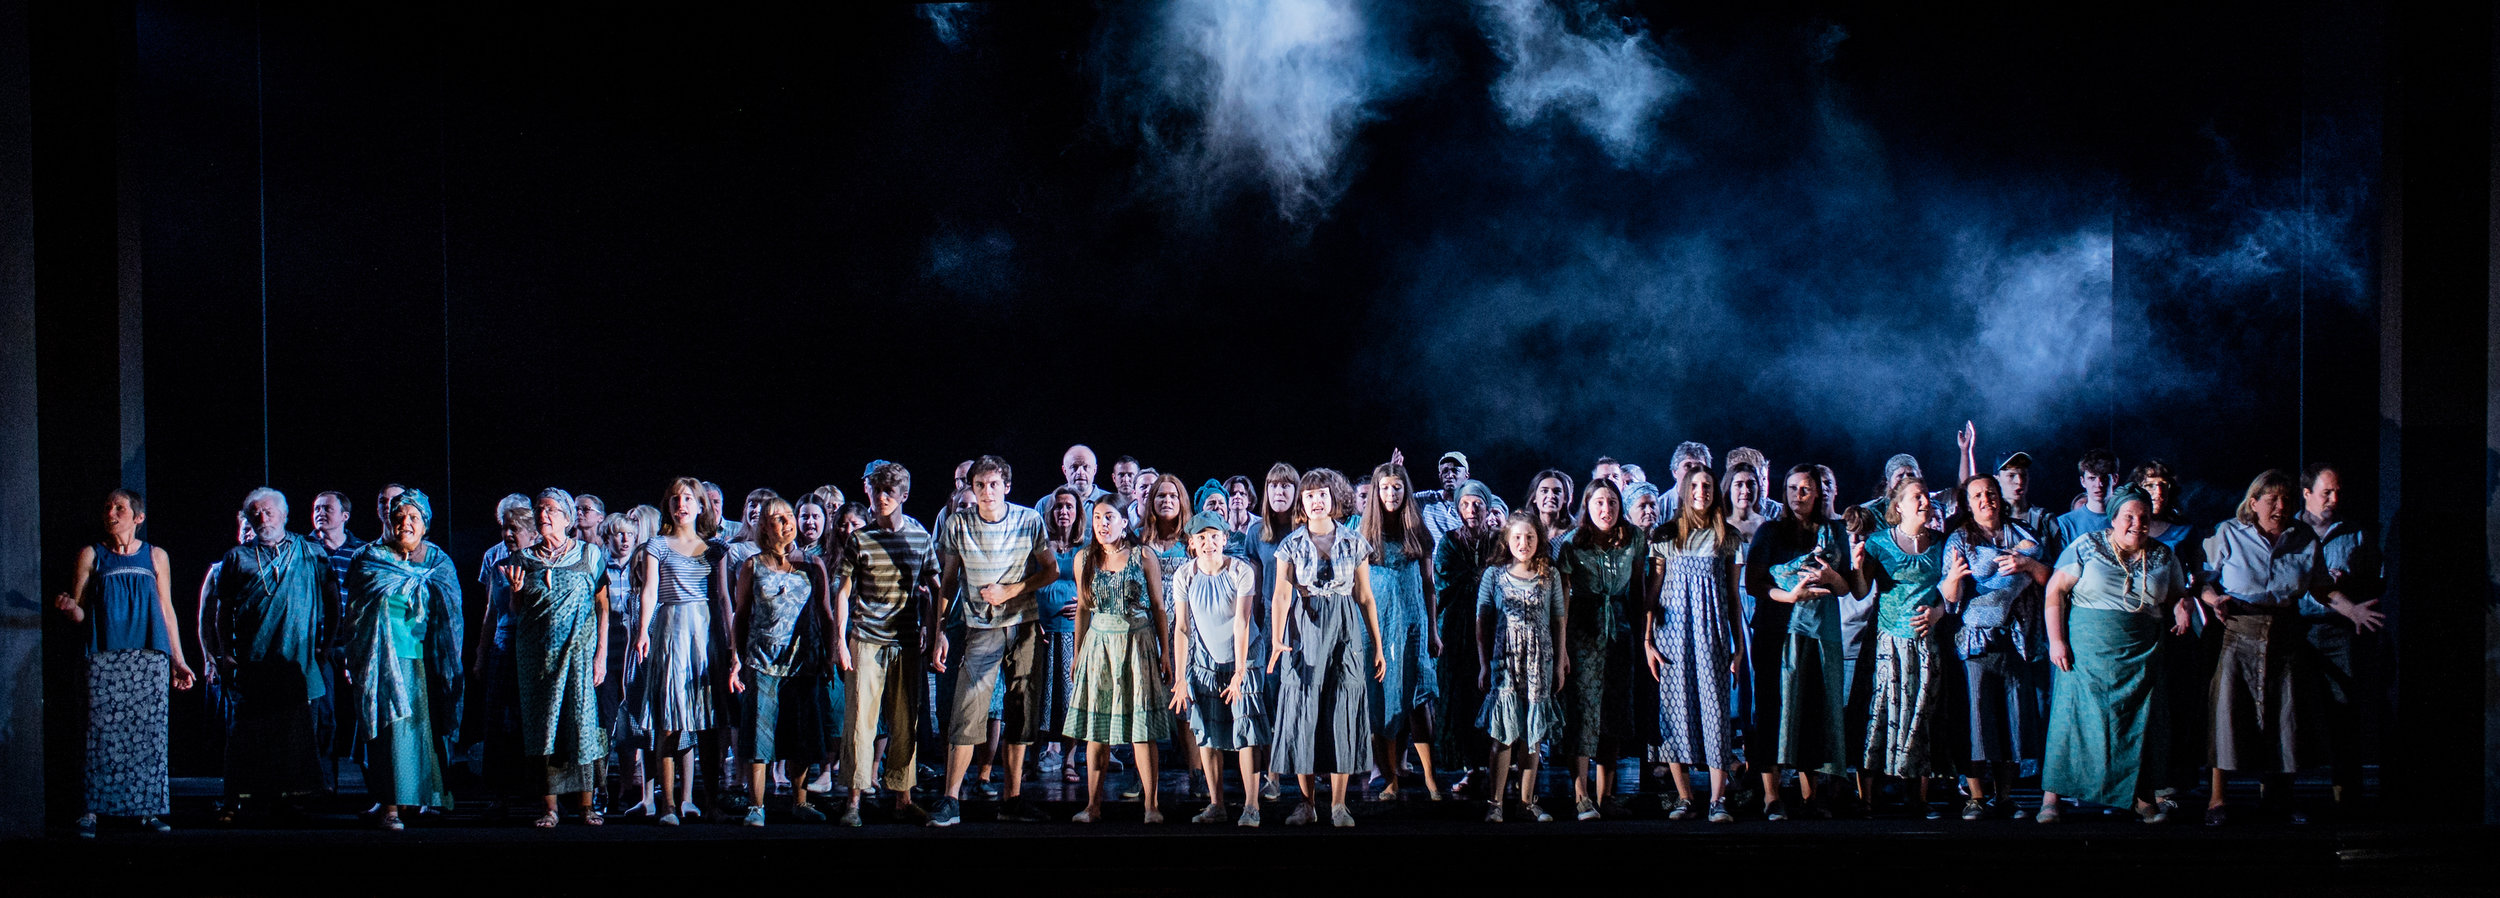 Glyndebourne Youth Opera and Community Chorus   AGREED  ©Glyndebourne Productions Ltd. Photo: Robert Workman 2019